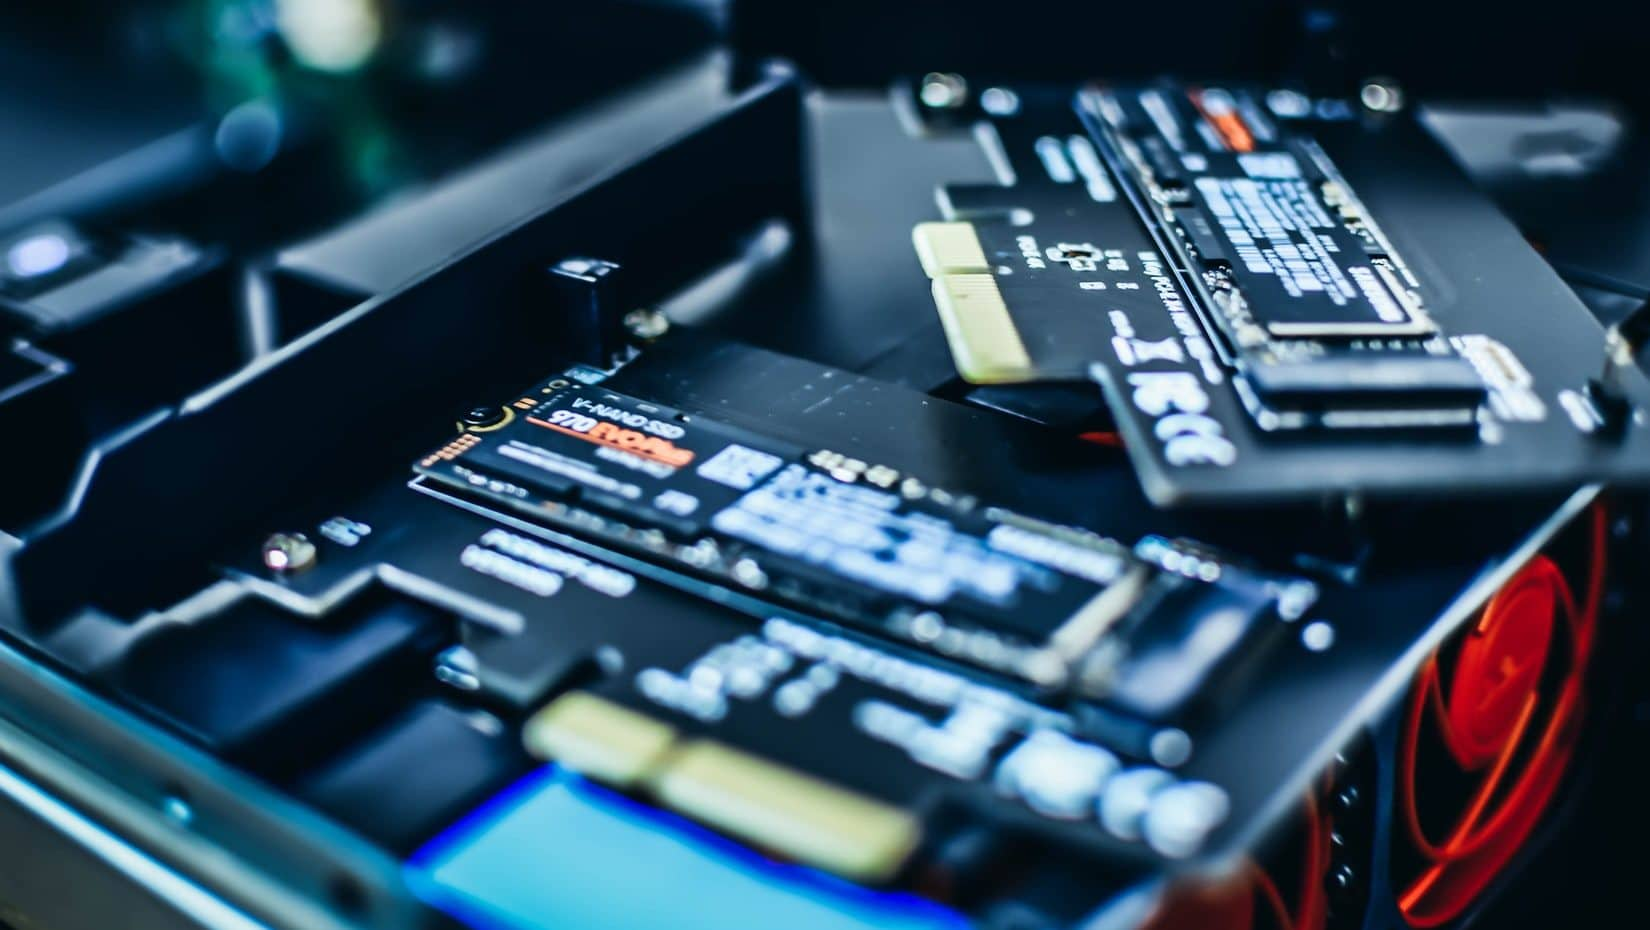 Ssd's in beeld